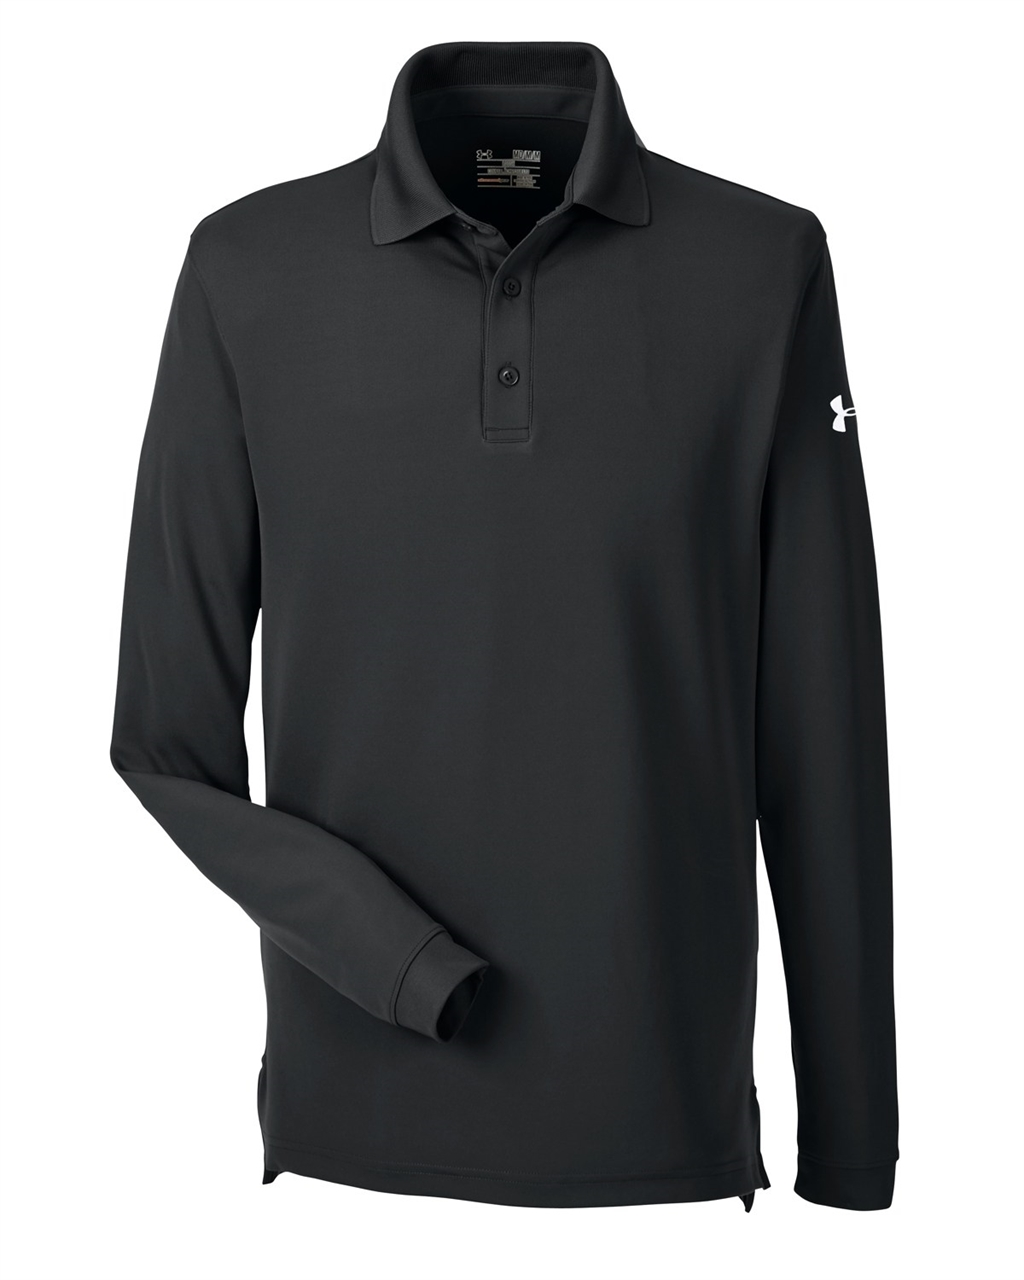 Picture of Under Armour Men's Performance Long Sleeve Polo